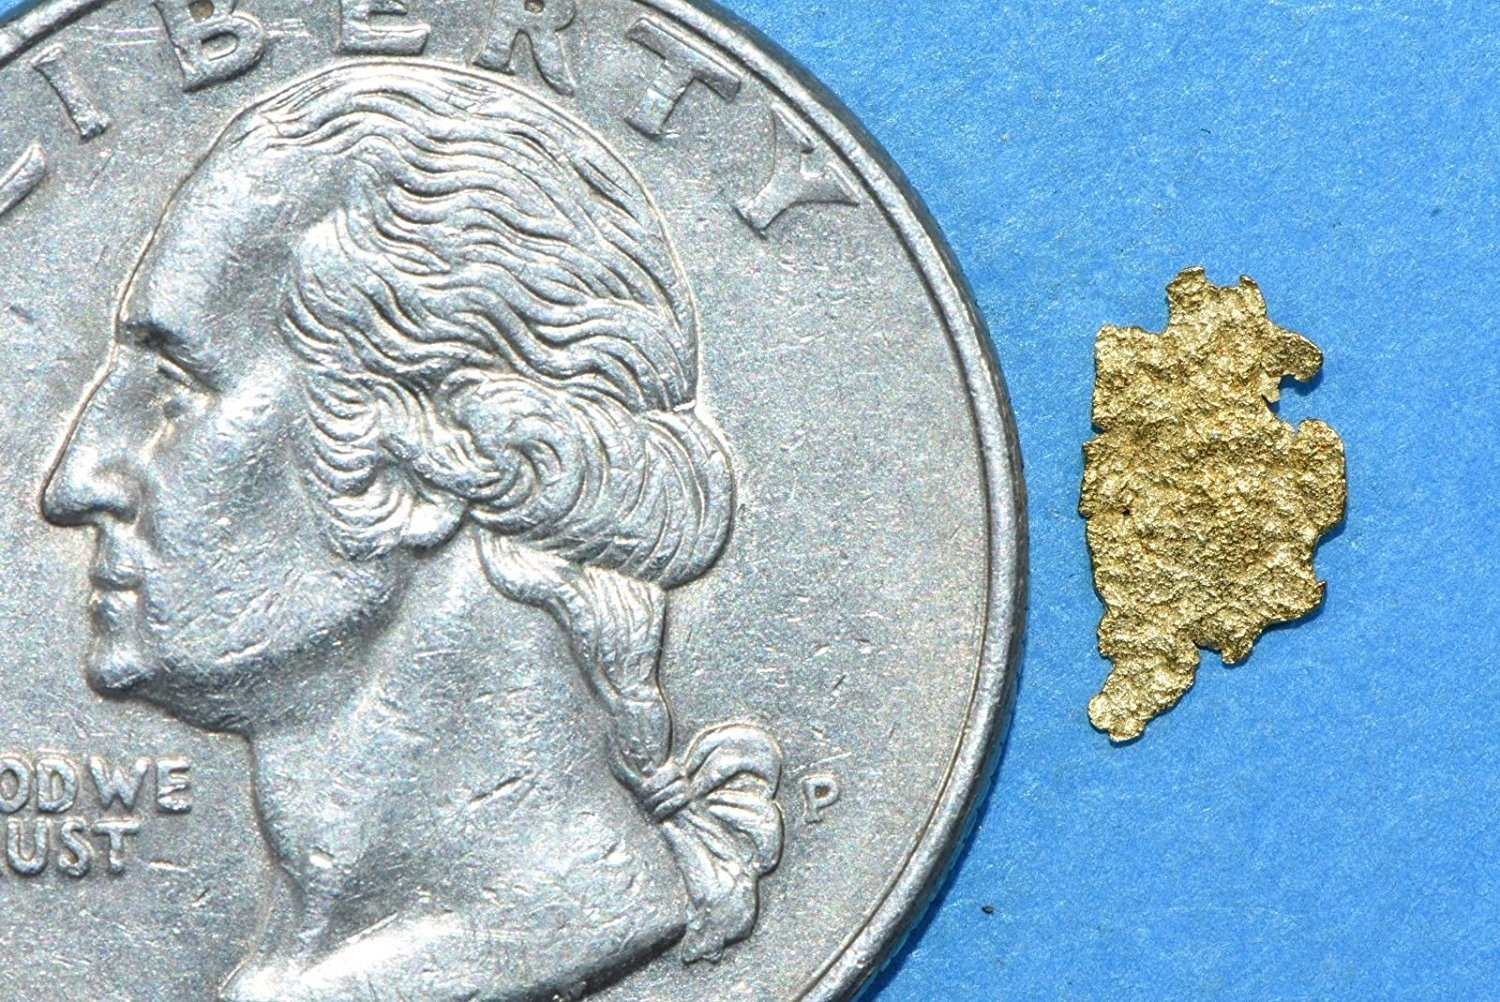 Alaskan-Yukon Bc Gold Rush Natural Nugget 0.10 Grams Genuine Alaska .10-.34